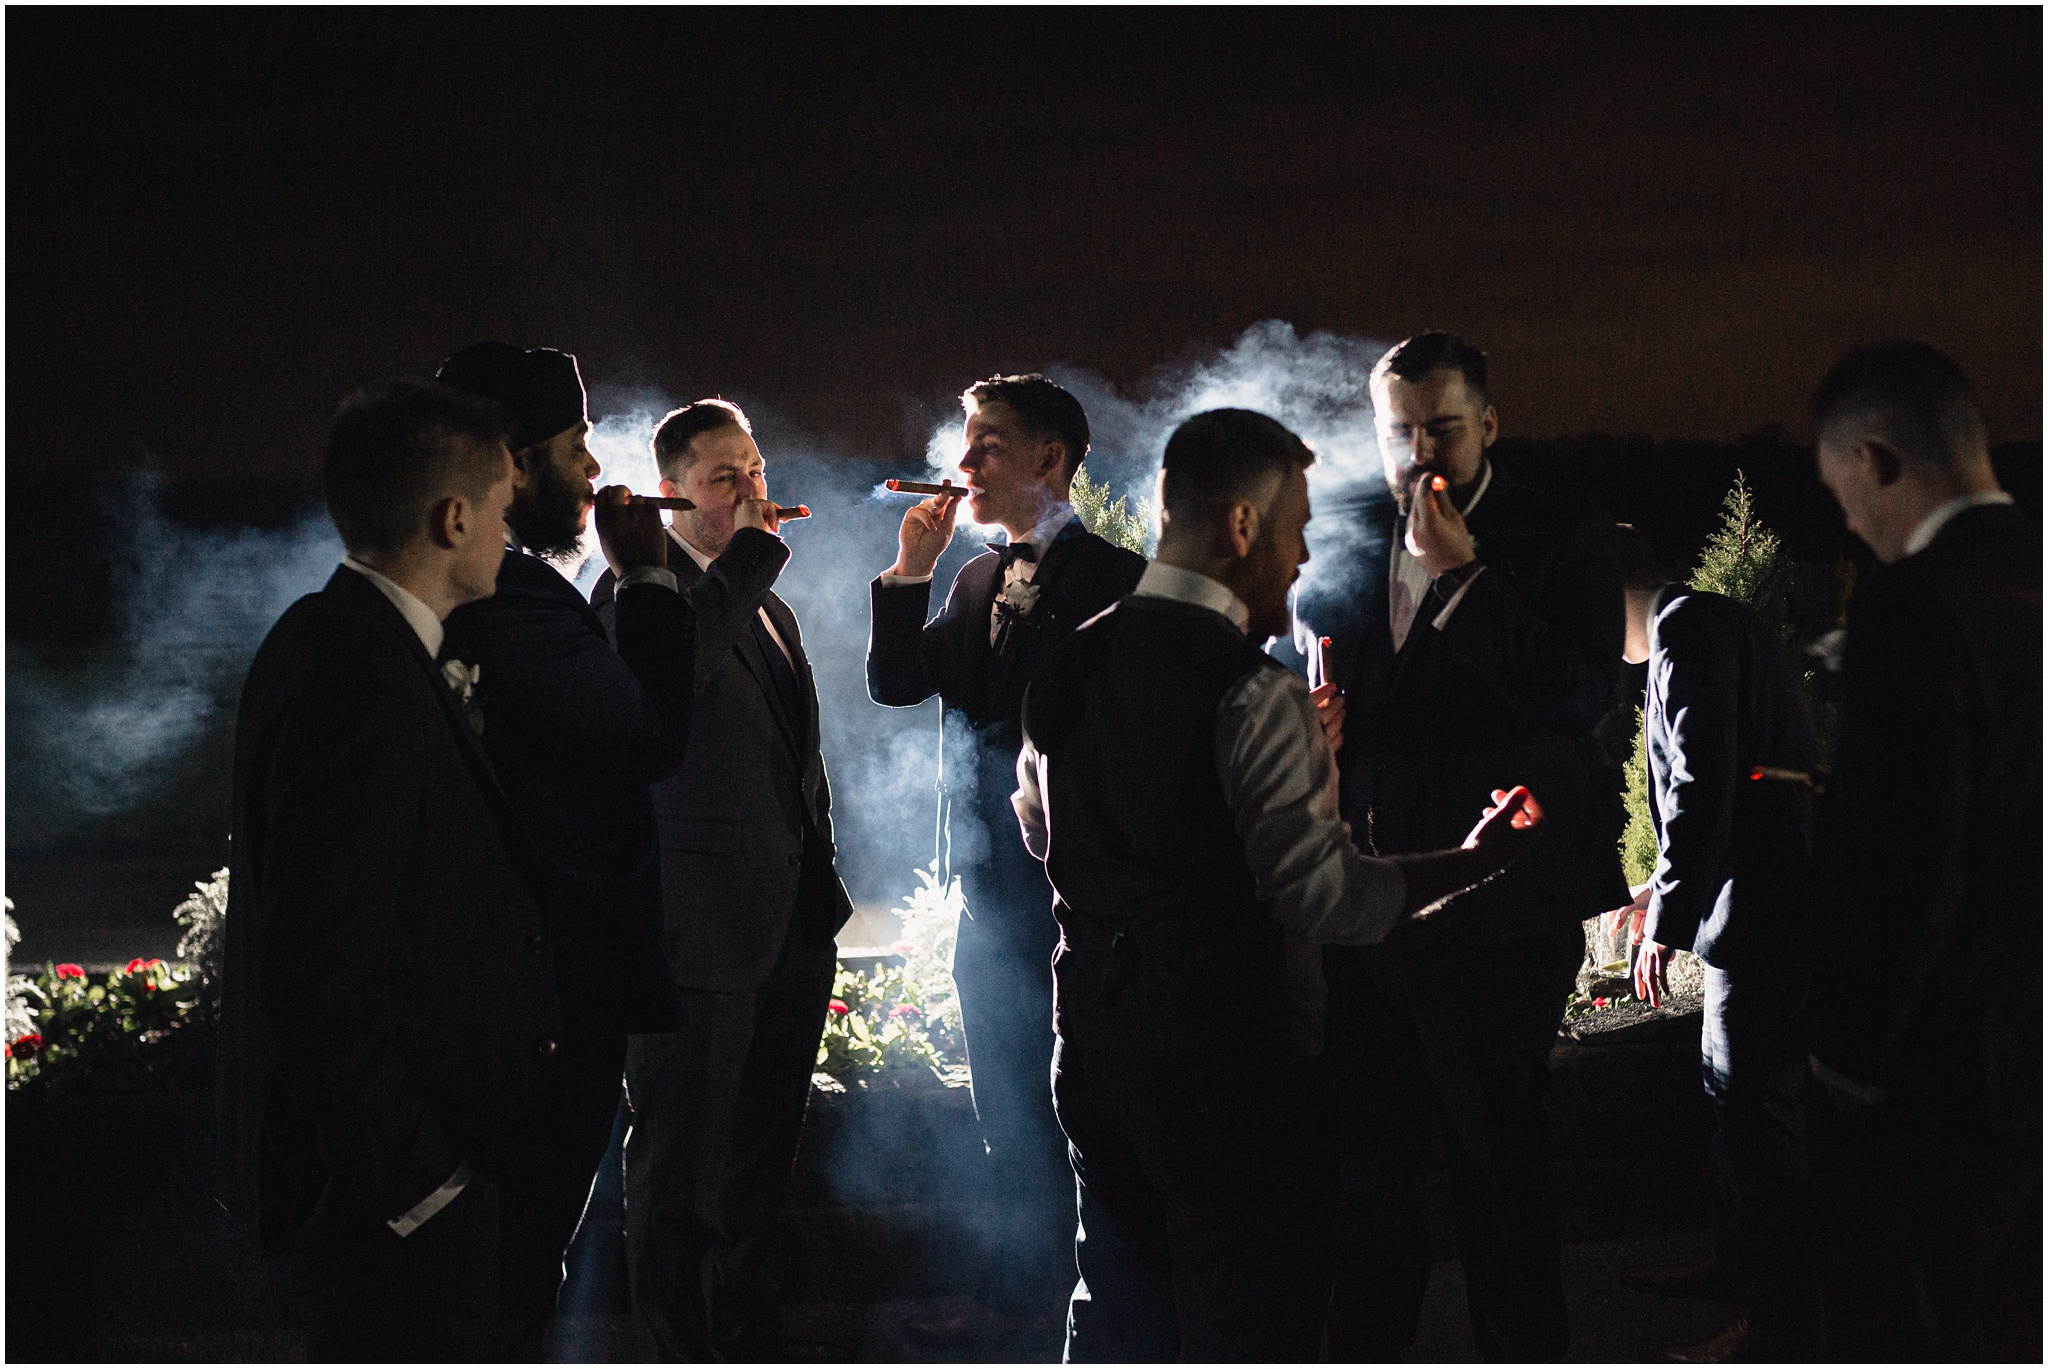 The groomsmen smoke cigars outside in the evening